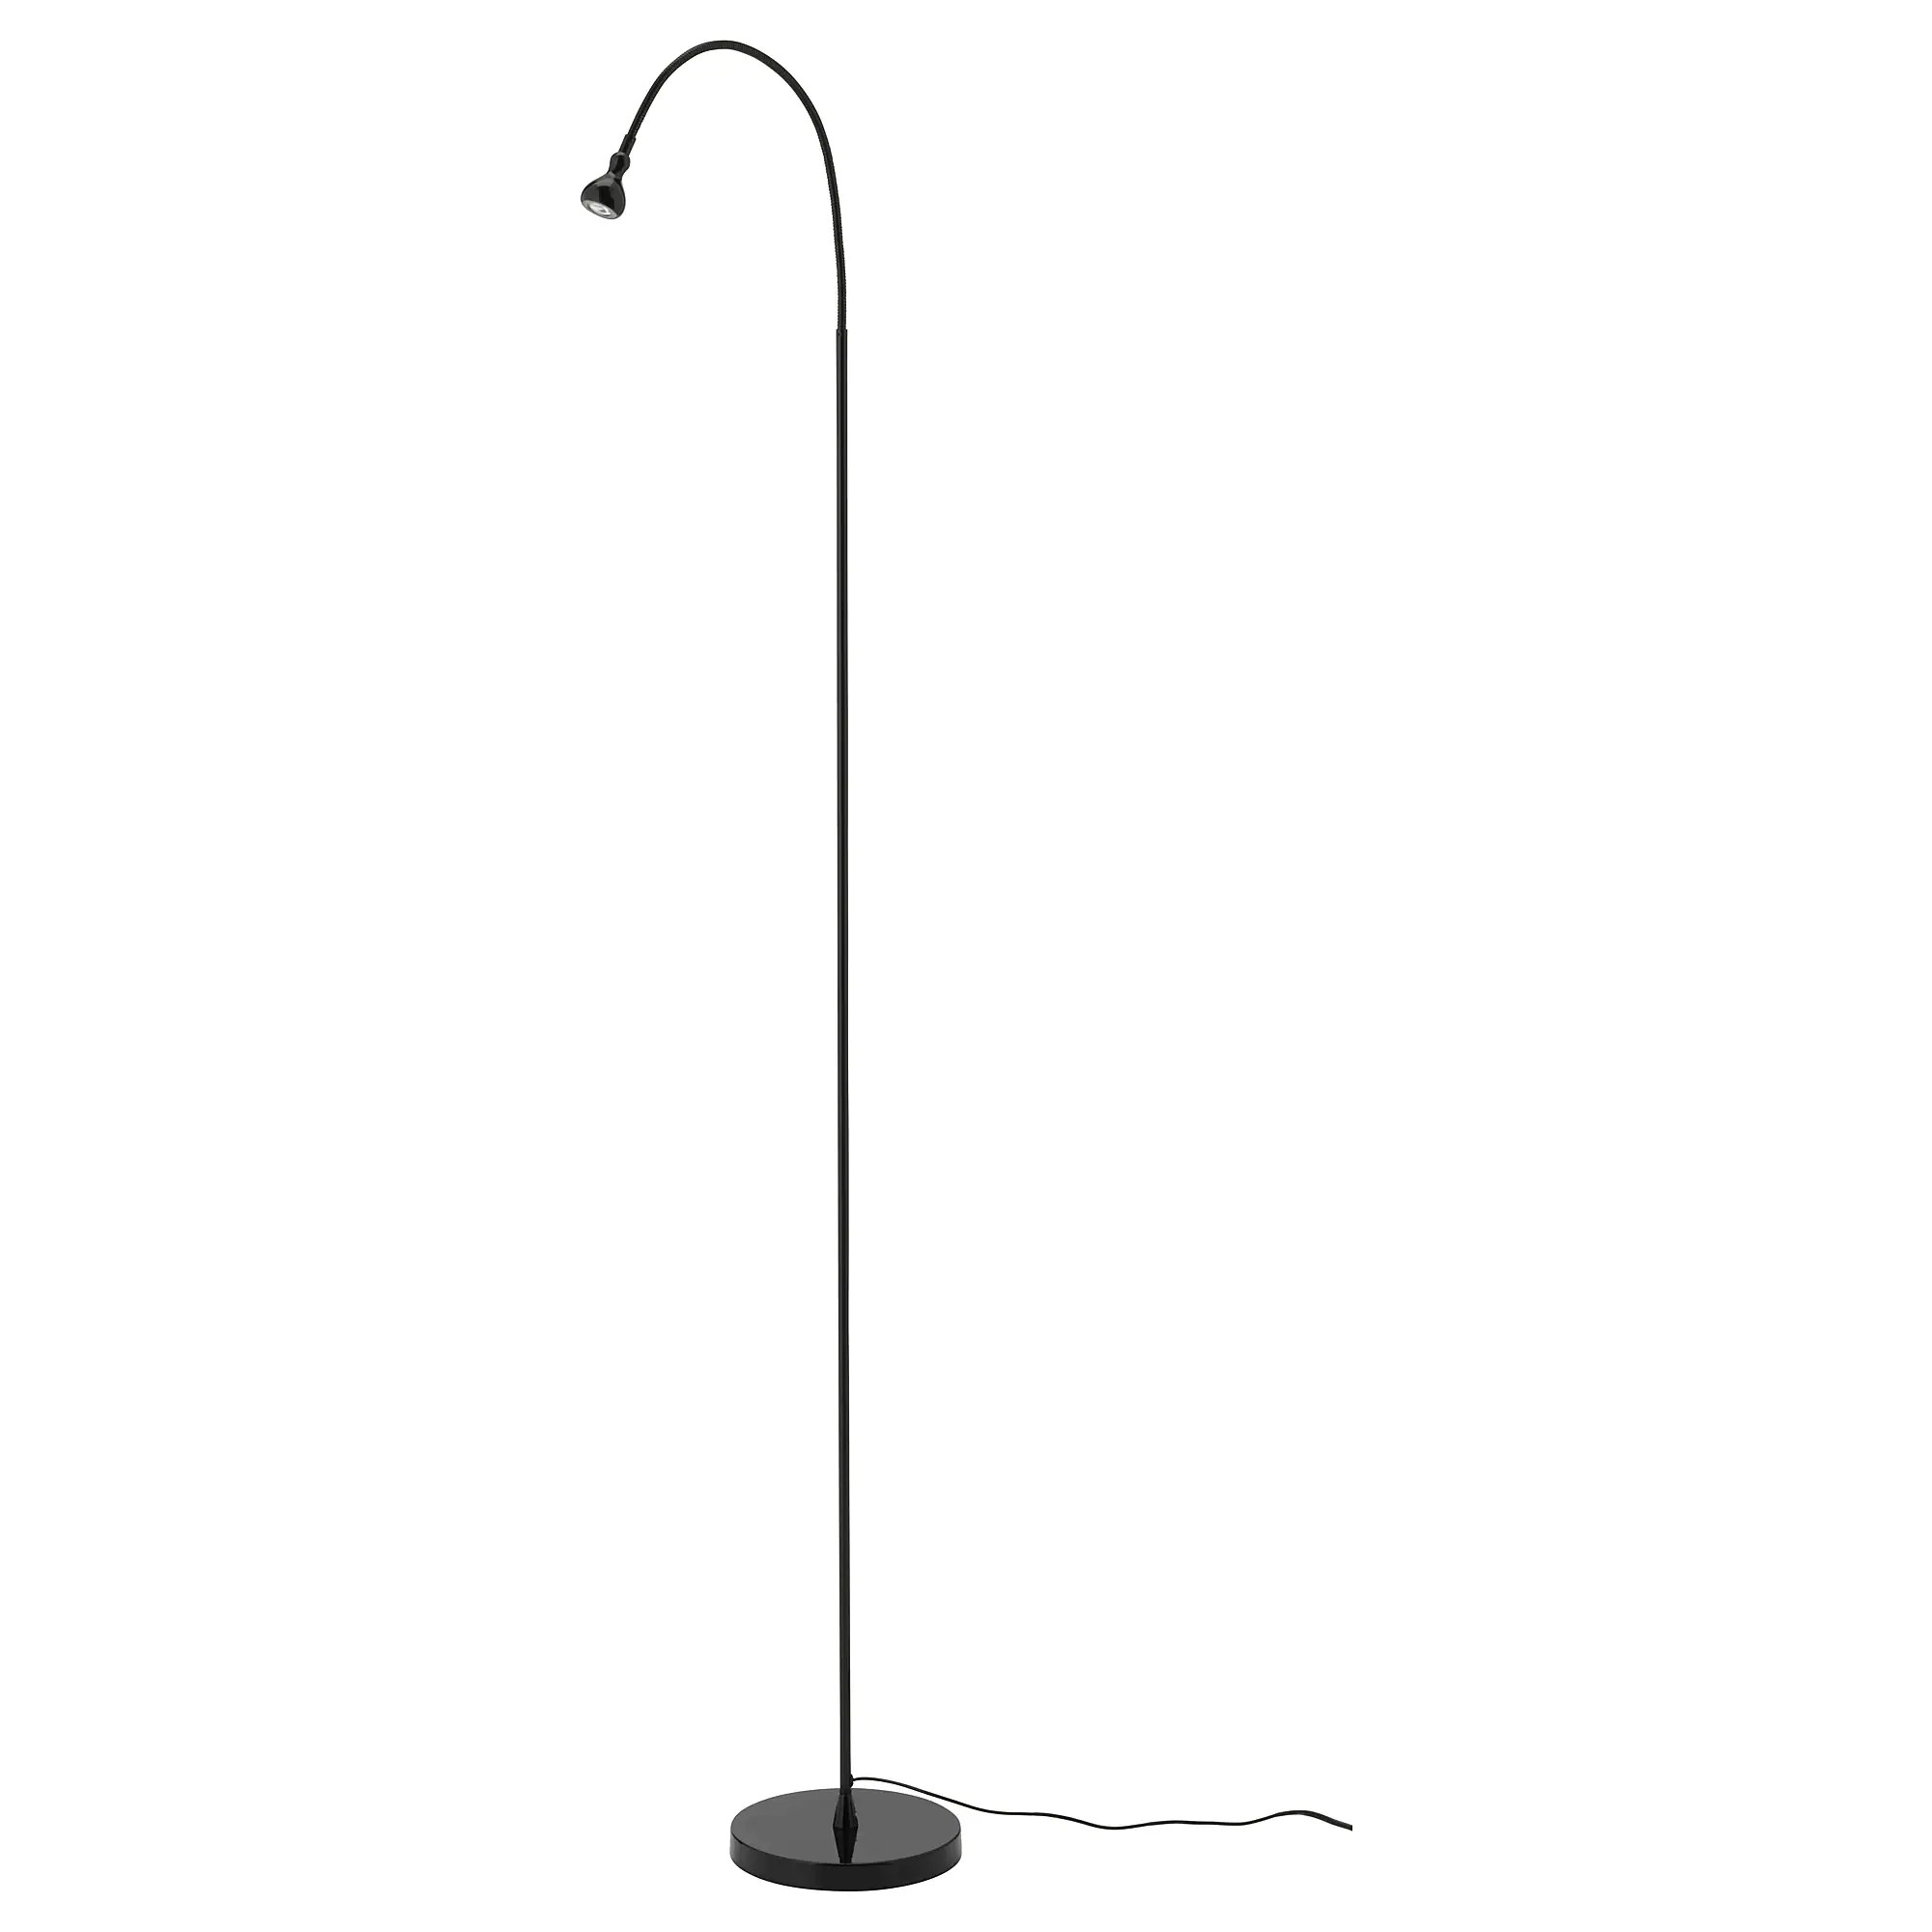 Leeslampje Kind JansjÖ Led Floor Read Lamp Black